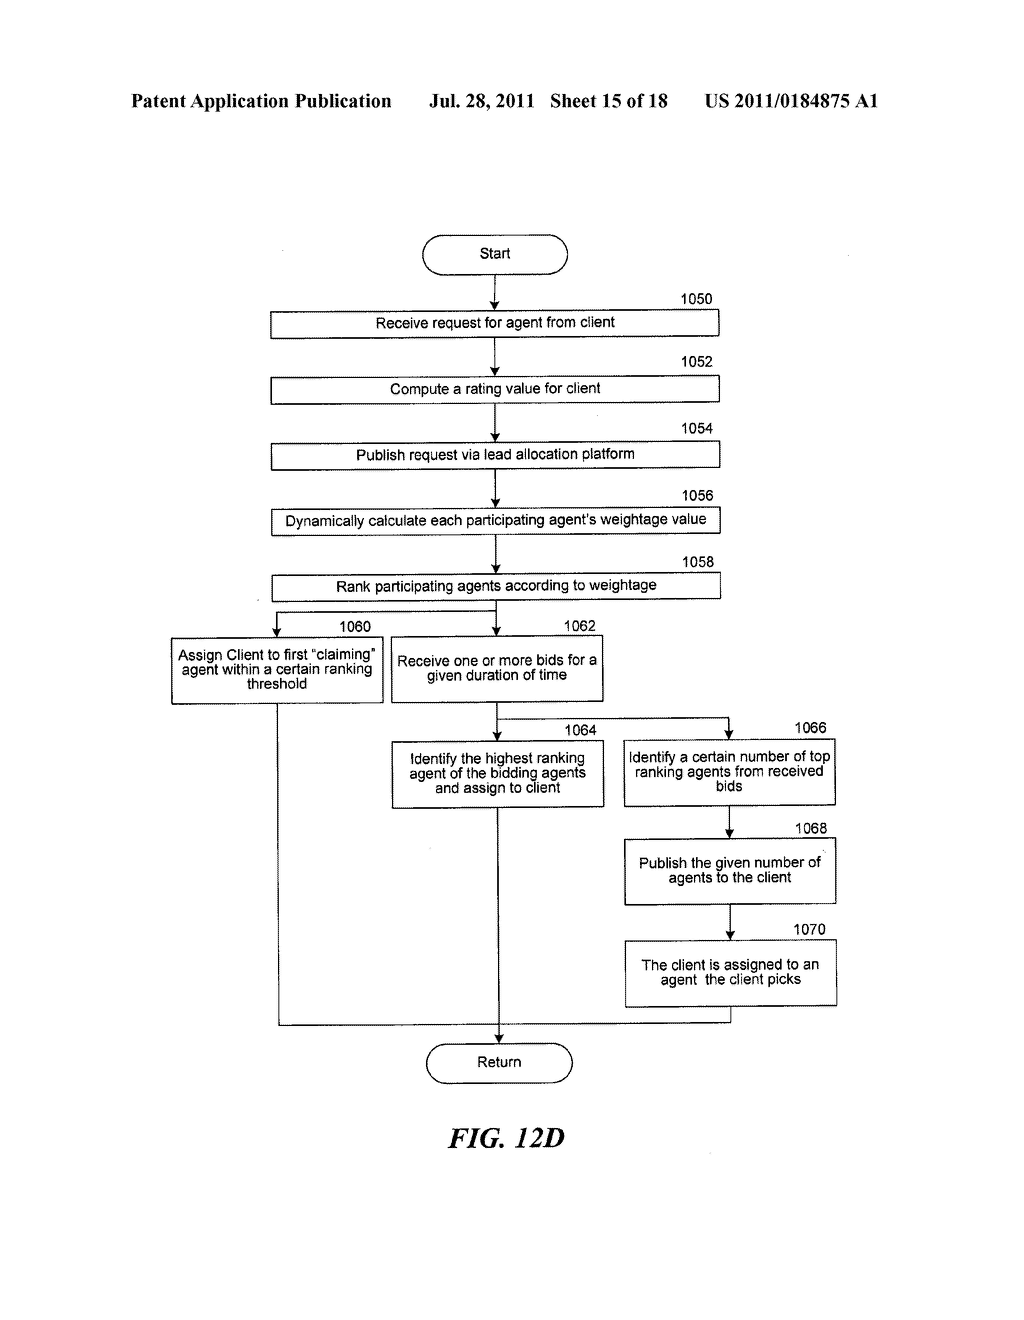 LEAD ALLOCATION IN REAL ESTATE APPLICATIONS USING DYNAMIC AGENT ALLOCATION     WEIGHTAGES - diagram, schematic, and image 16